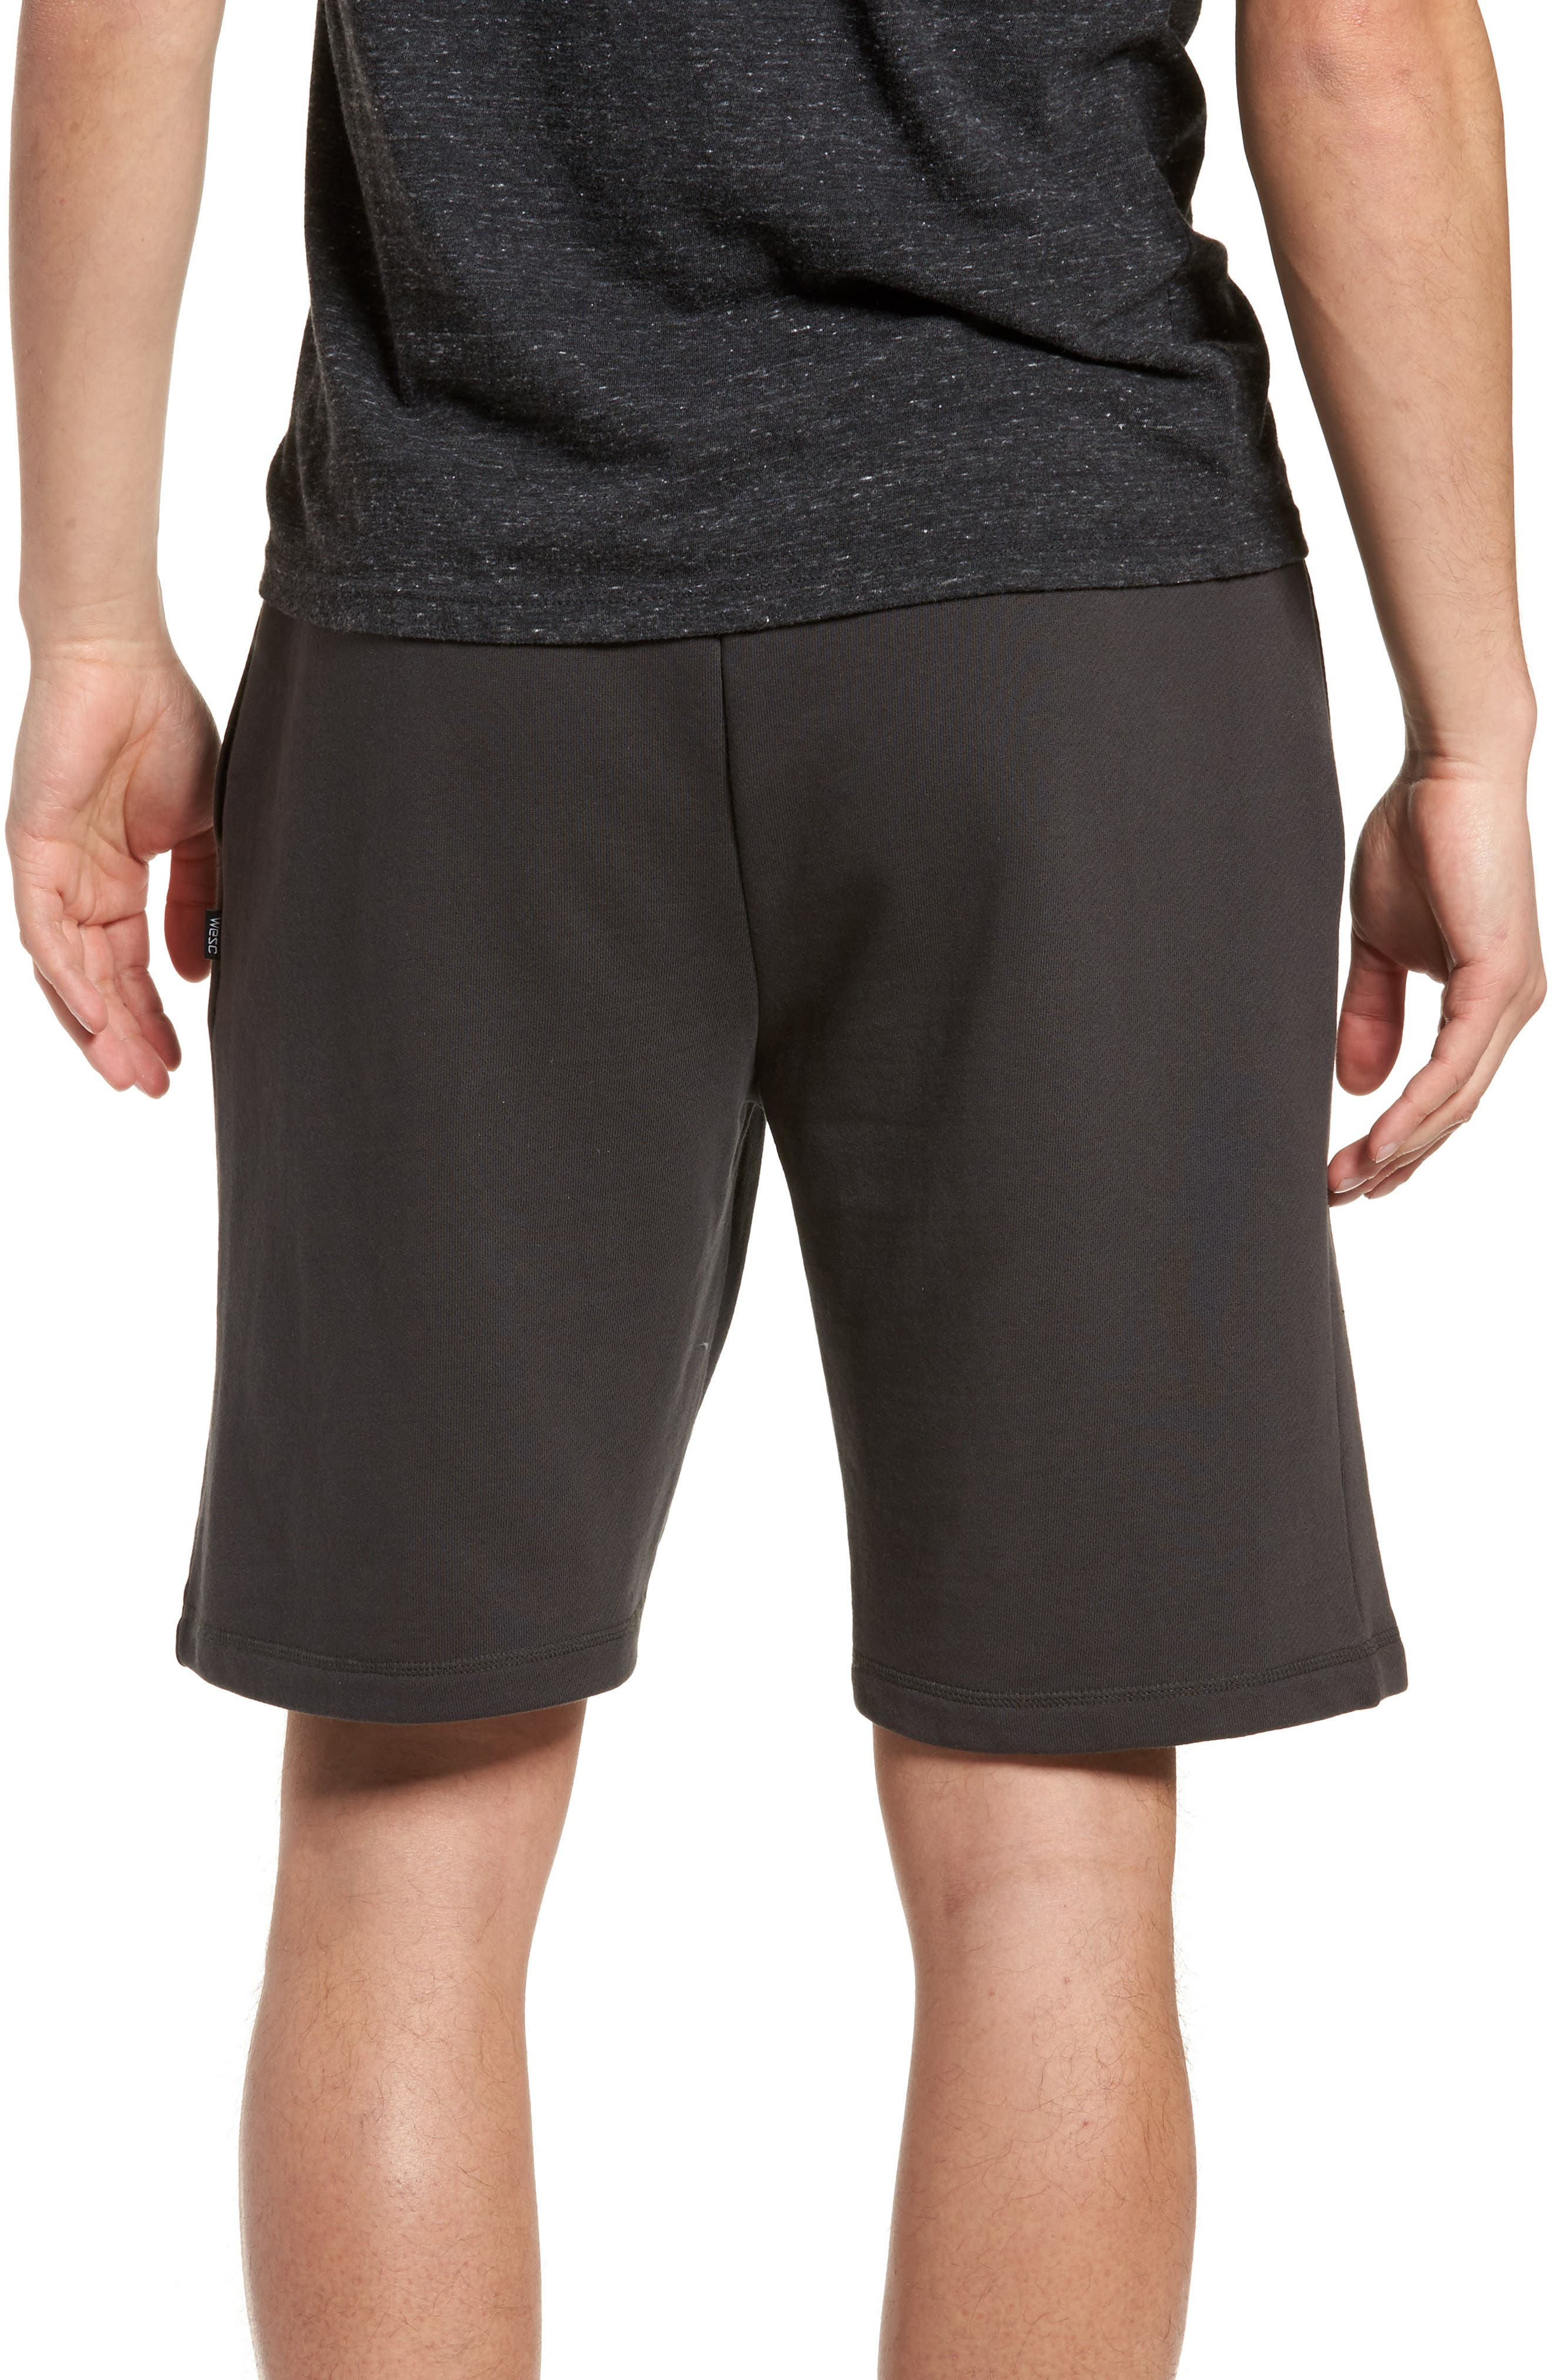 Marty Fleece Shorts,                             Alternate thumbnail 2, color,                             Pirate Black